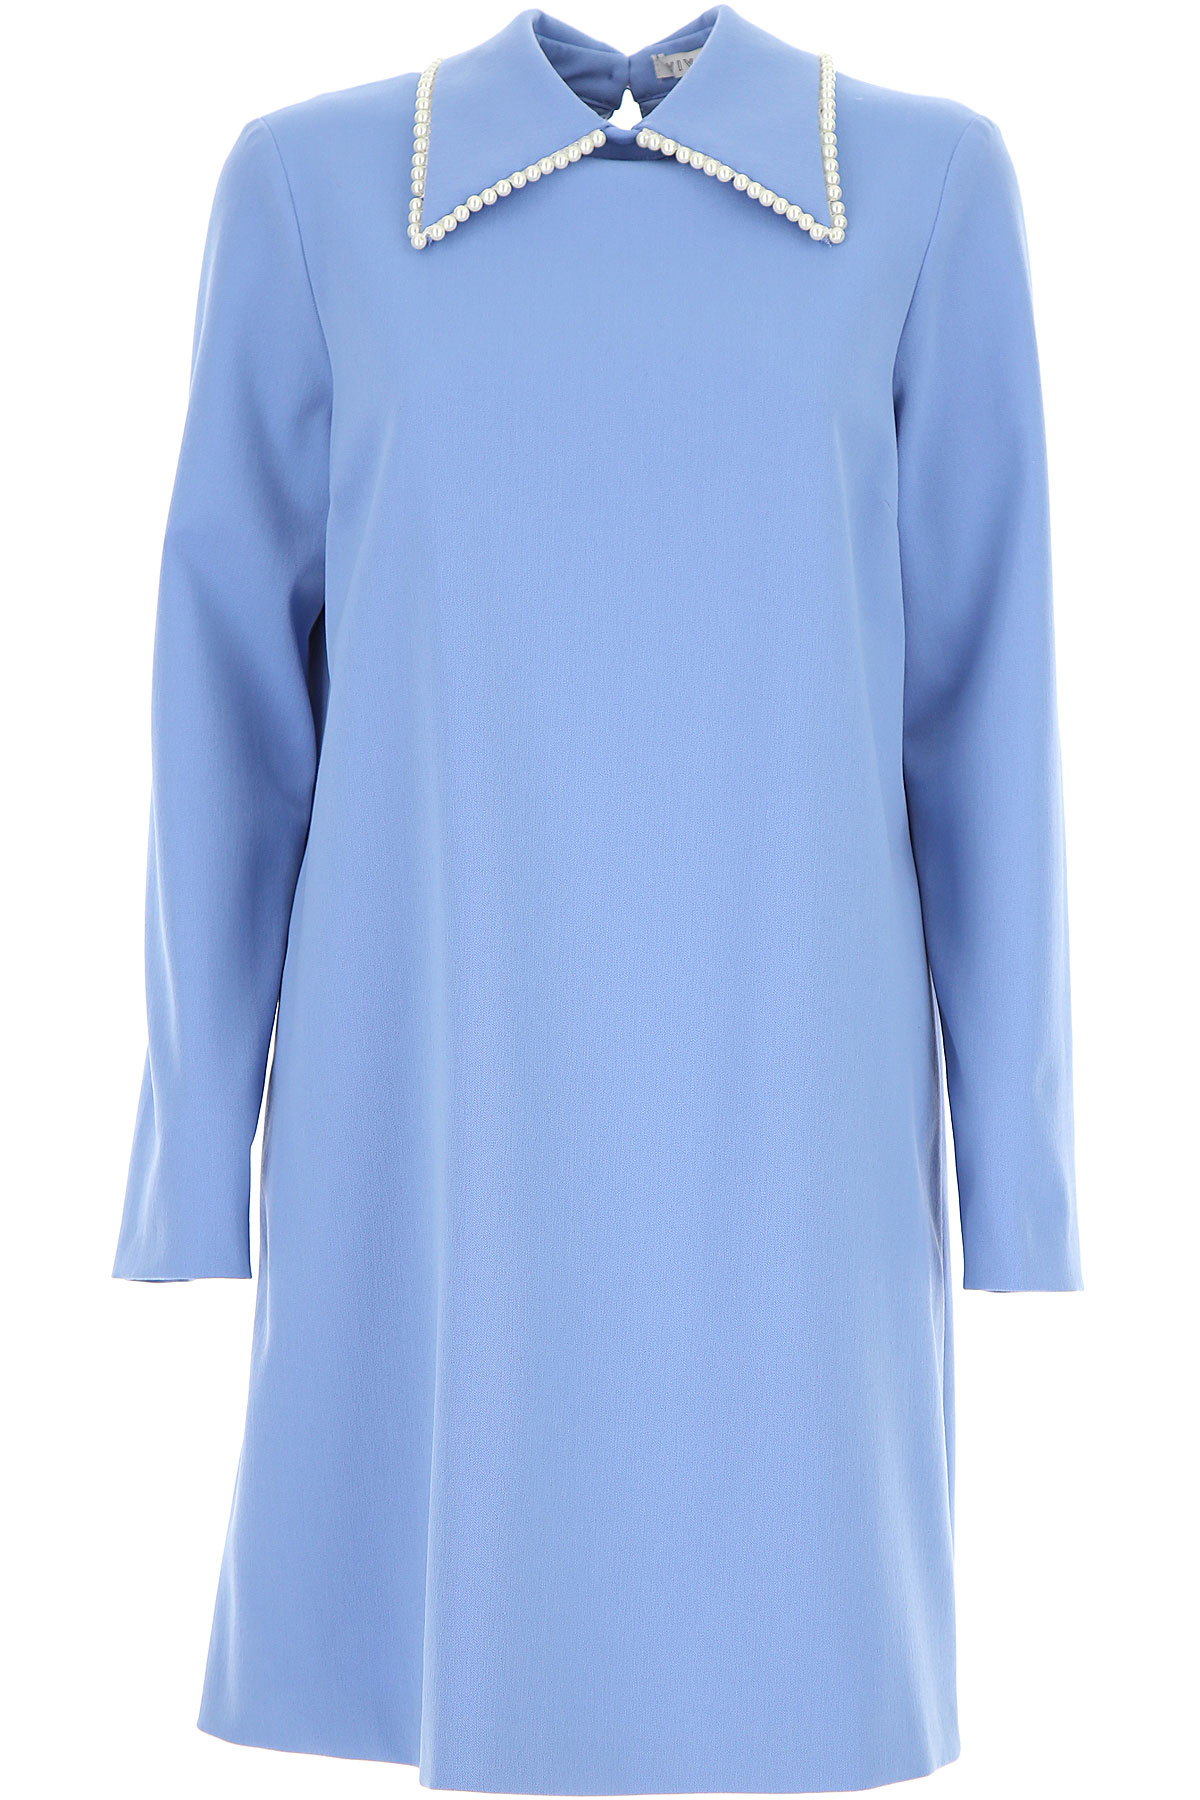 Vivetta Dress for Women, Evening Cocktail Party On Sale, Sky Blue, polyester, 2019, 4 6 8